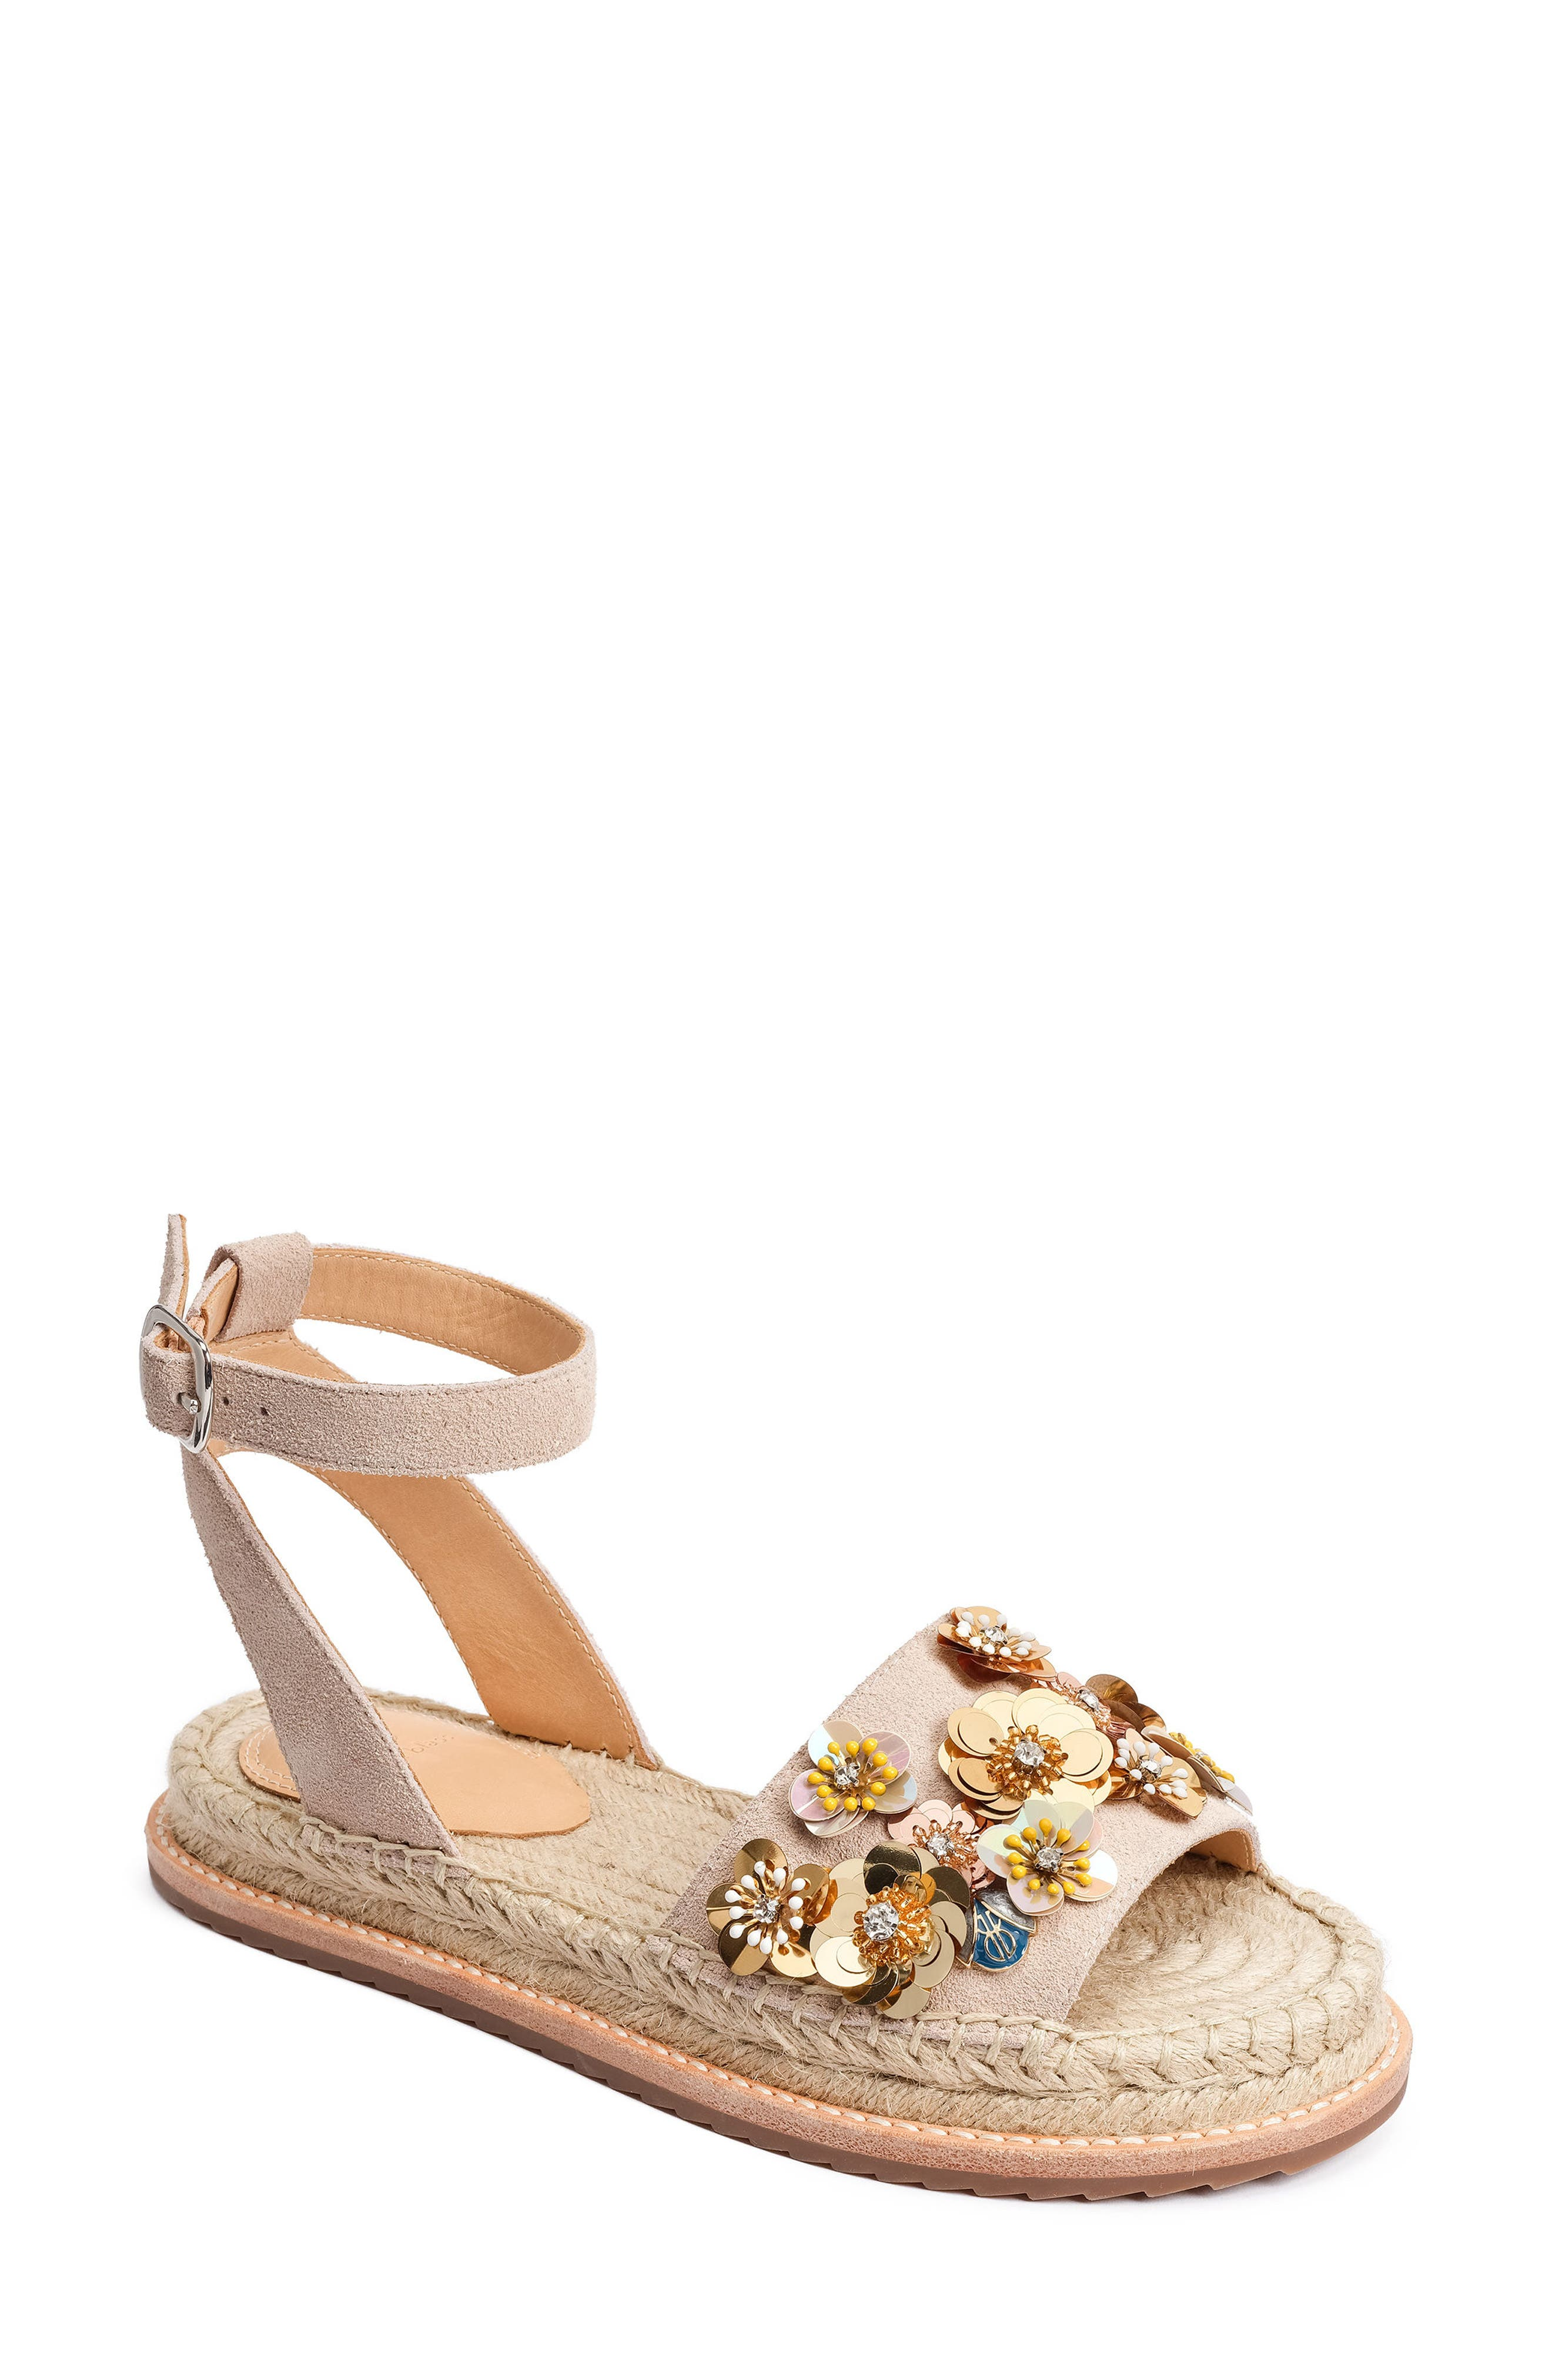 Bromley Floral Embellished Espadrille,                             Main thumbnail 1, color,                             Vanilla Leather